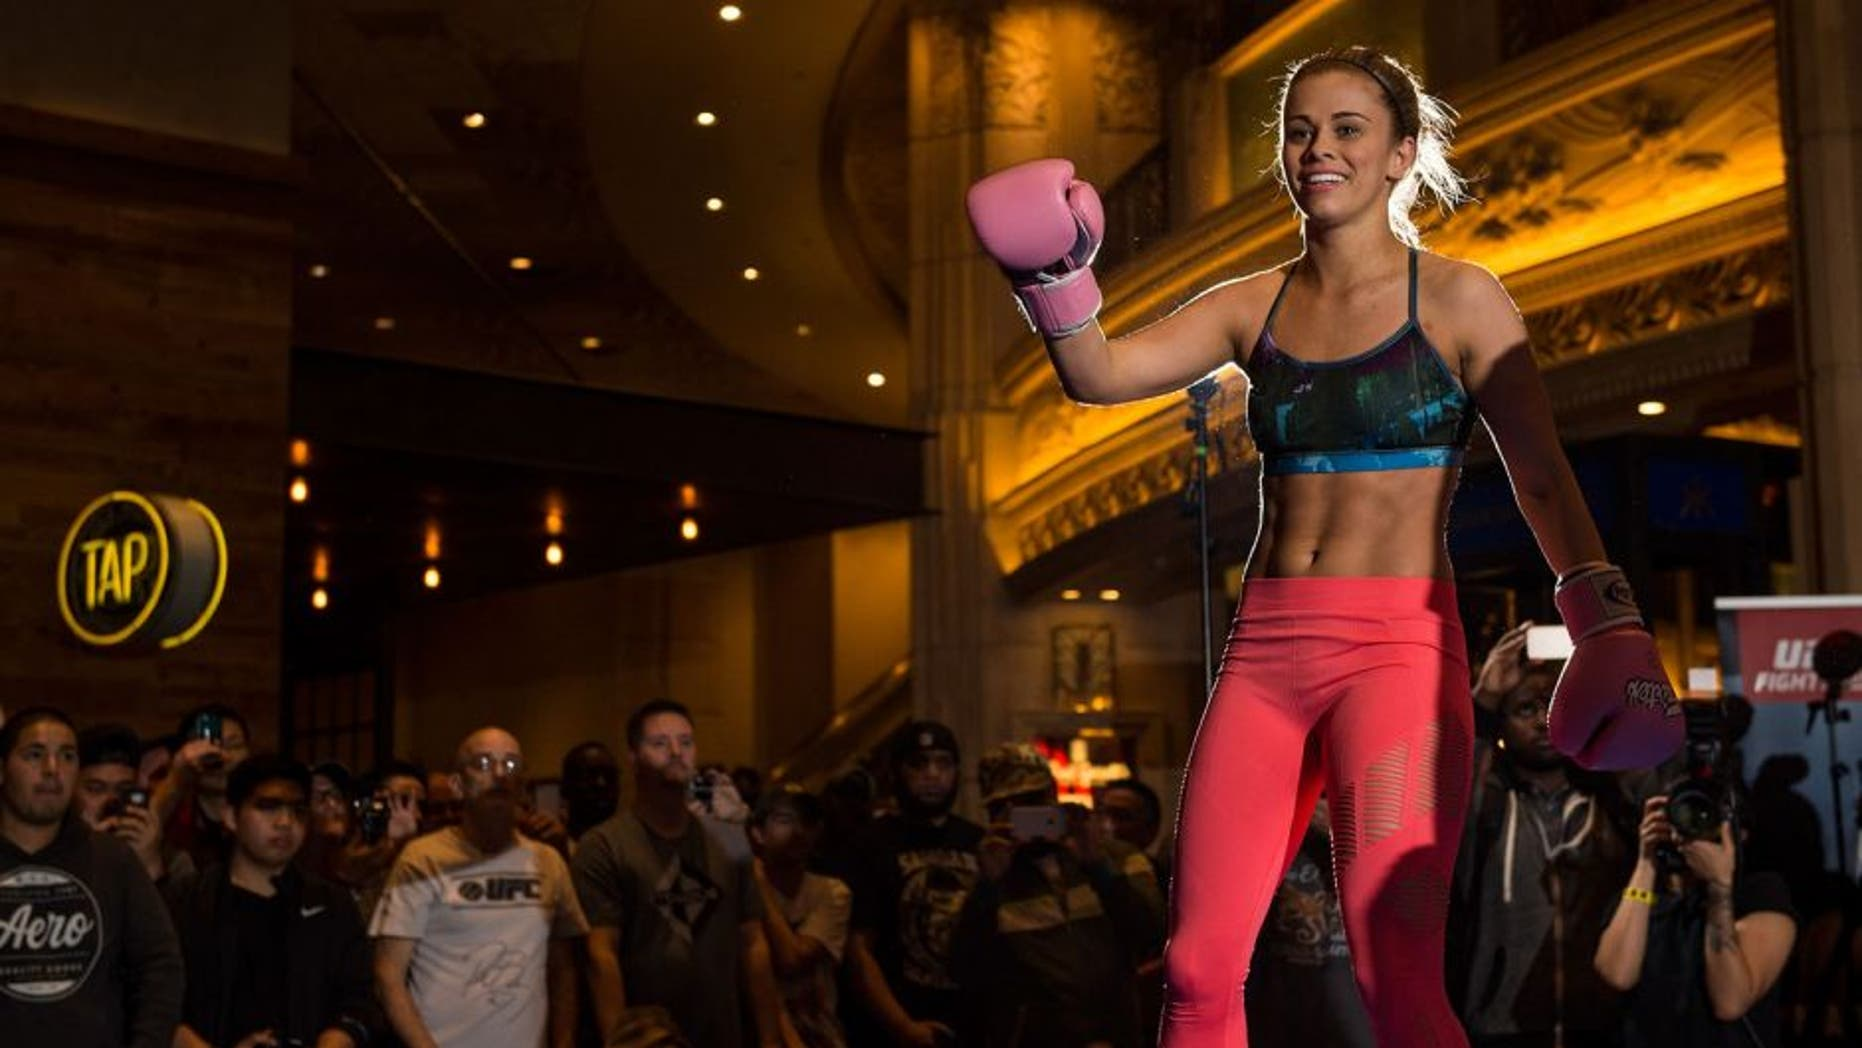 LAS VEGAS, NEVADA - DECEMBER 08: Paige VanZant holds an open training session for fans and media at the MGM Grand Hotel/Casino on December 8, 2015 in Las Vegas Nevada. (Photo by Brandon Magnus/Zuffa LLC/Zuffa LLC via Getty Images)